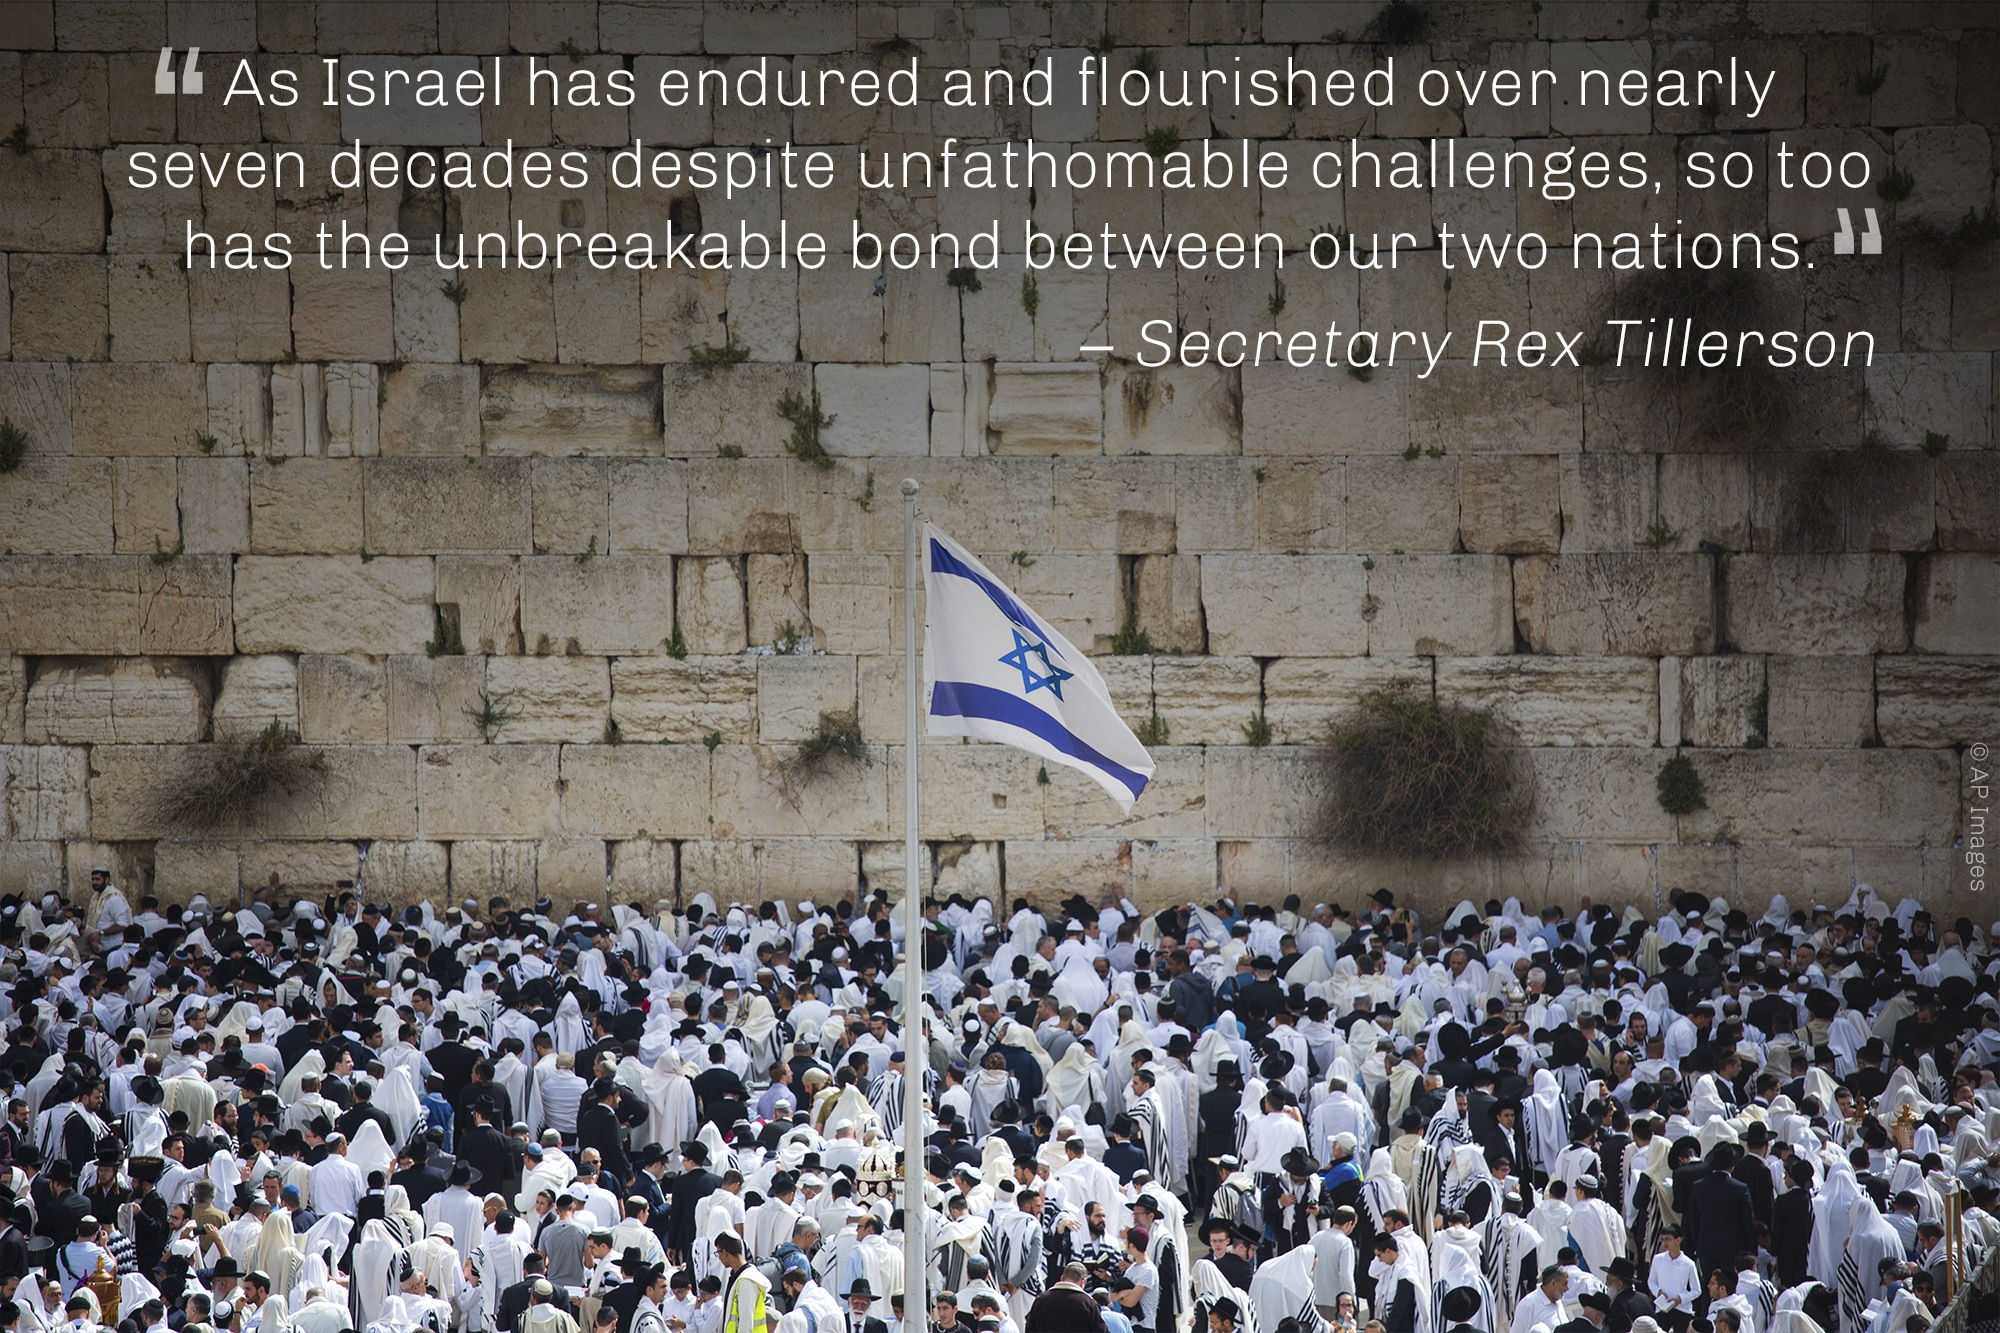 Quote from Secretary Tillerson on U.S.-Israeli bond, overlaid on photo of large crowd before wall (© AP Images)